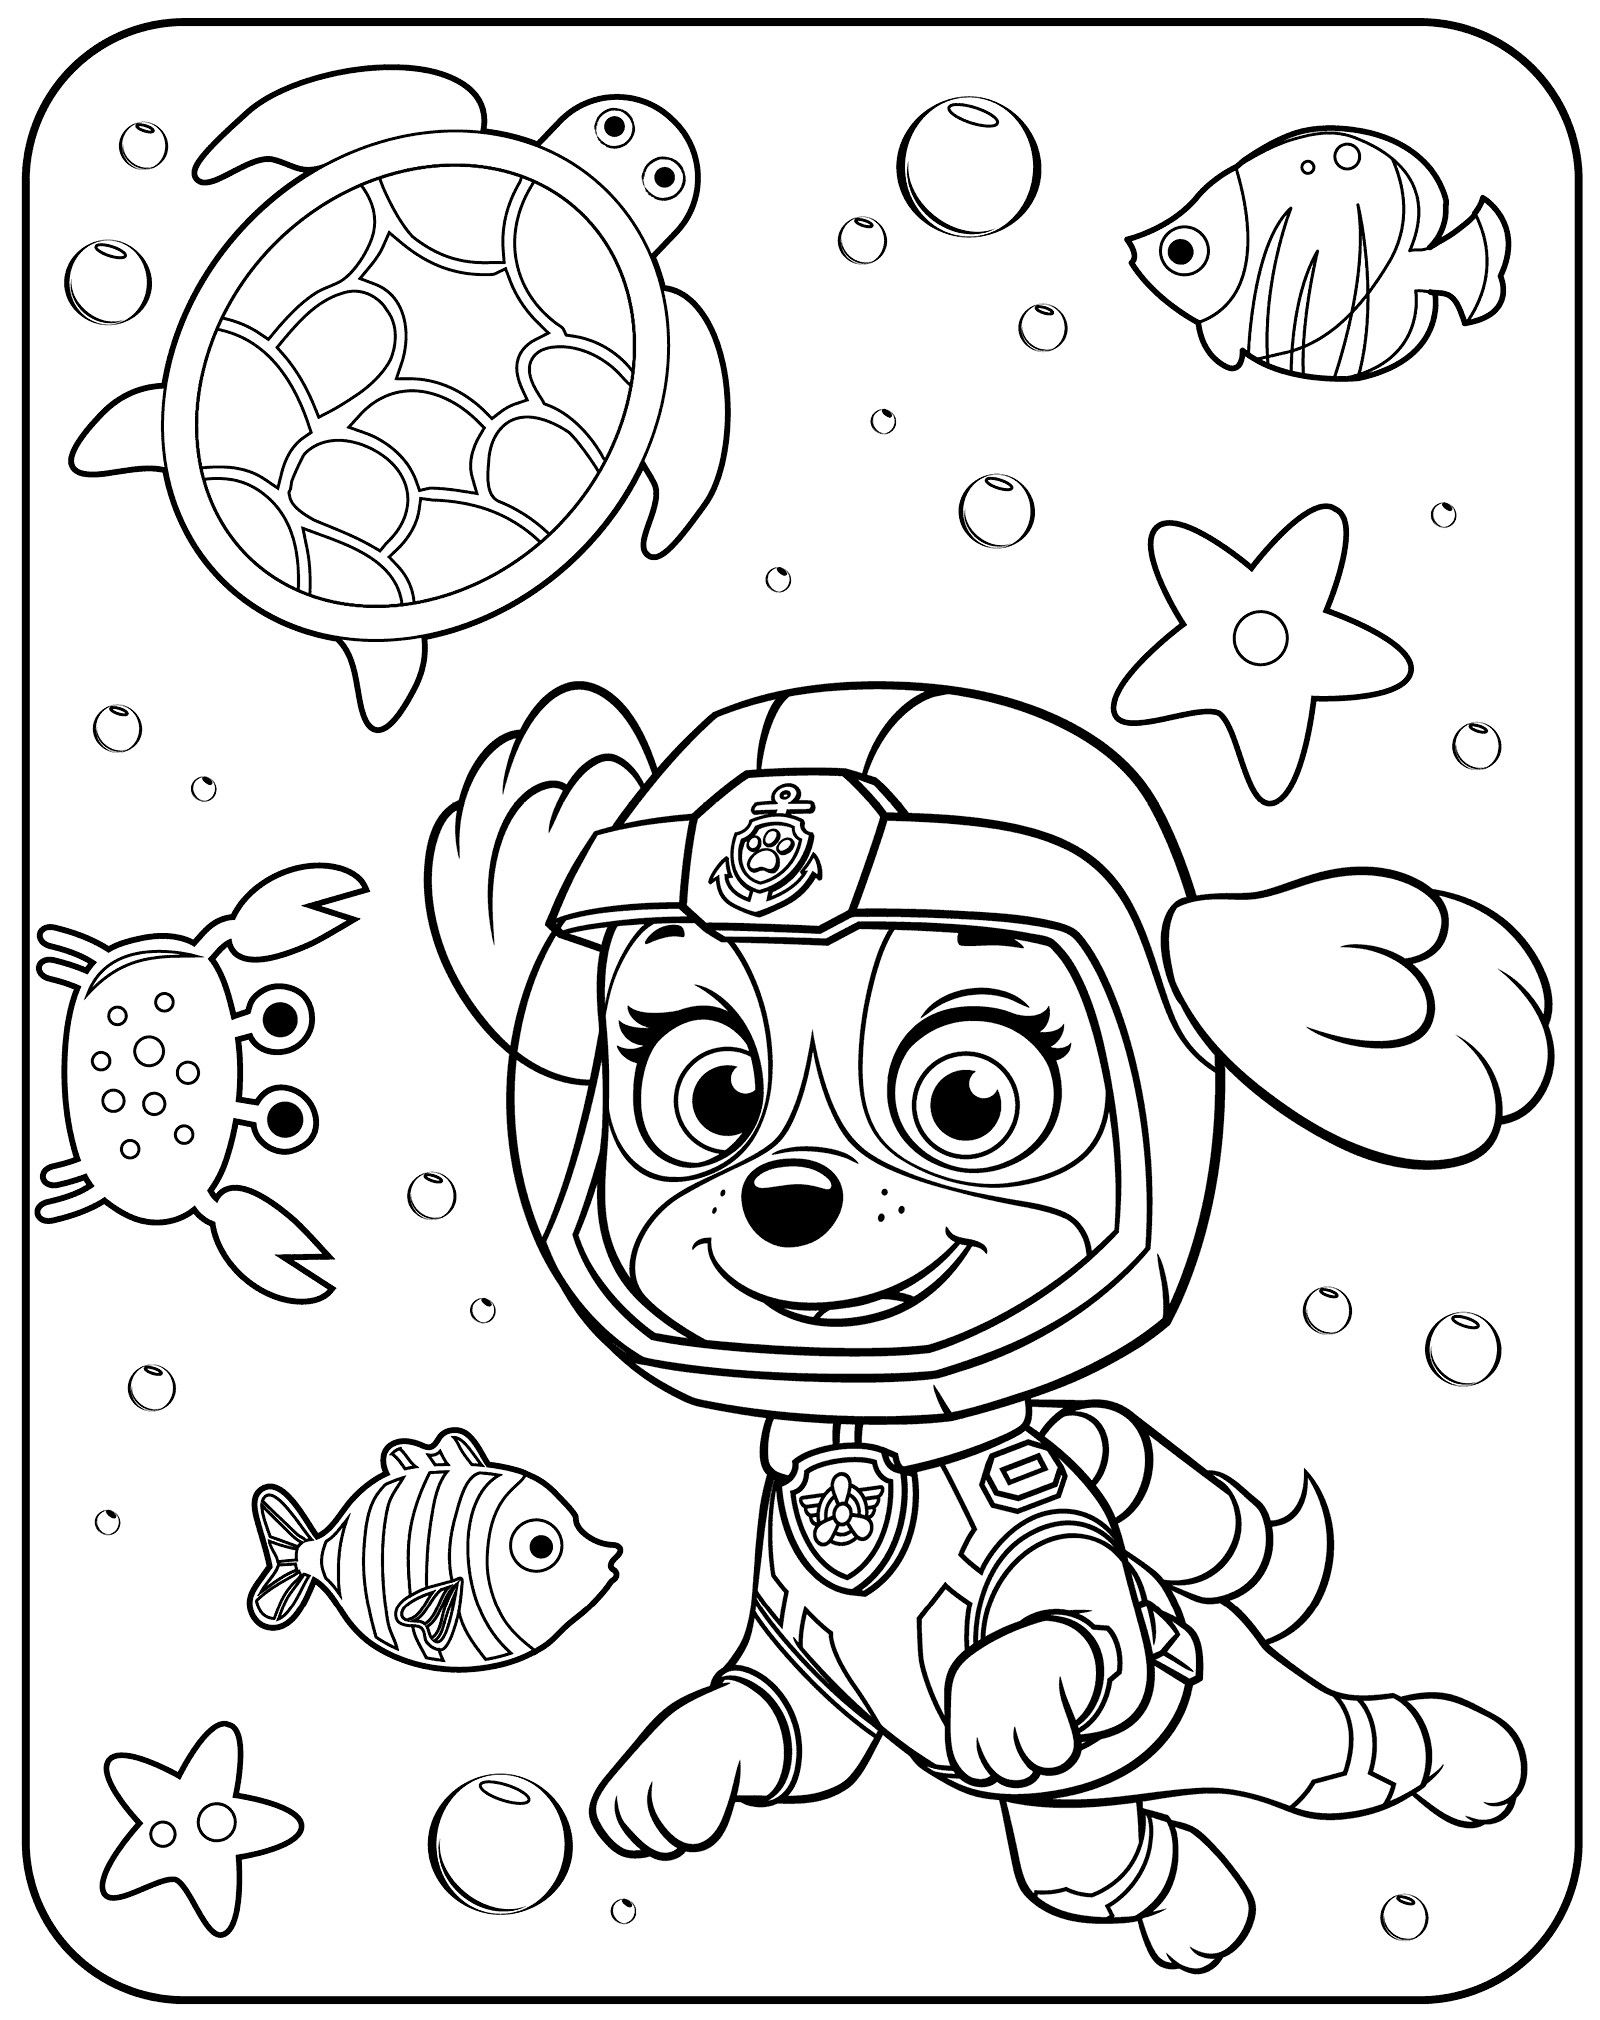 Paw Patrol Coloring Pages Ryder In 2020 Paw Patrol Coloring Pages Paw Patrol Coloring Birthday Coloring Pages